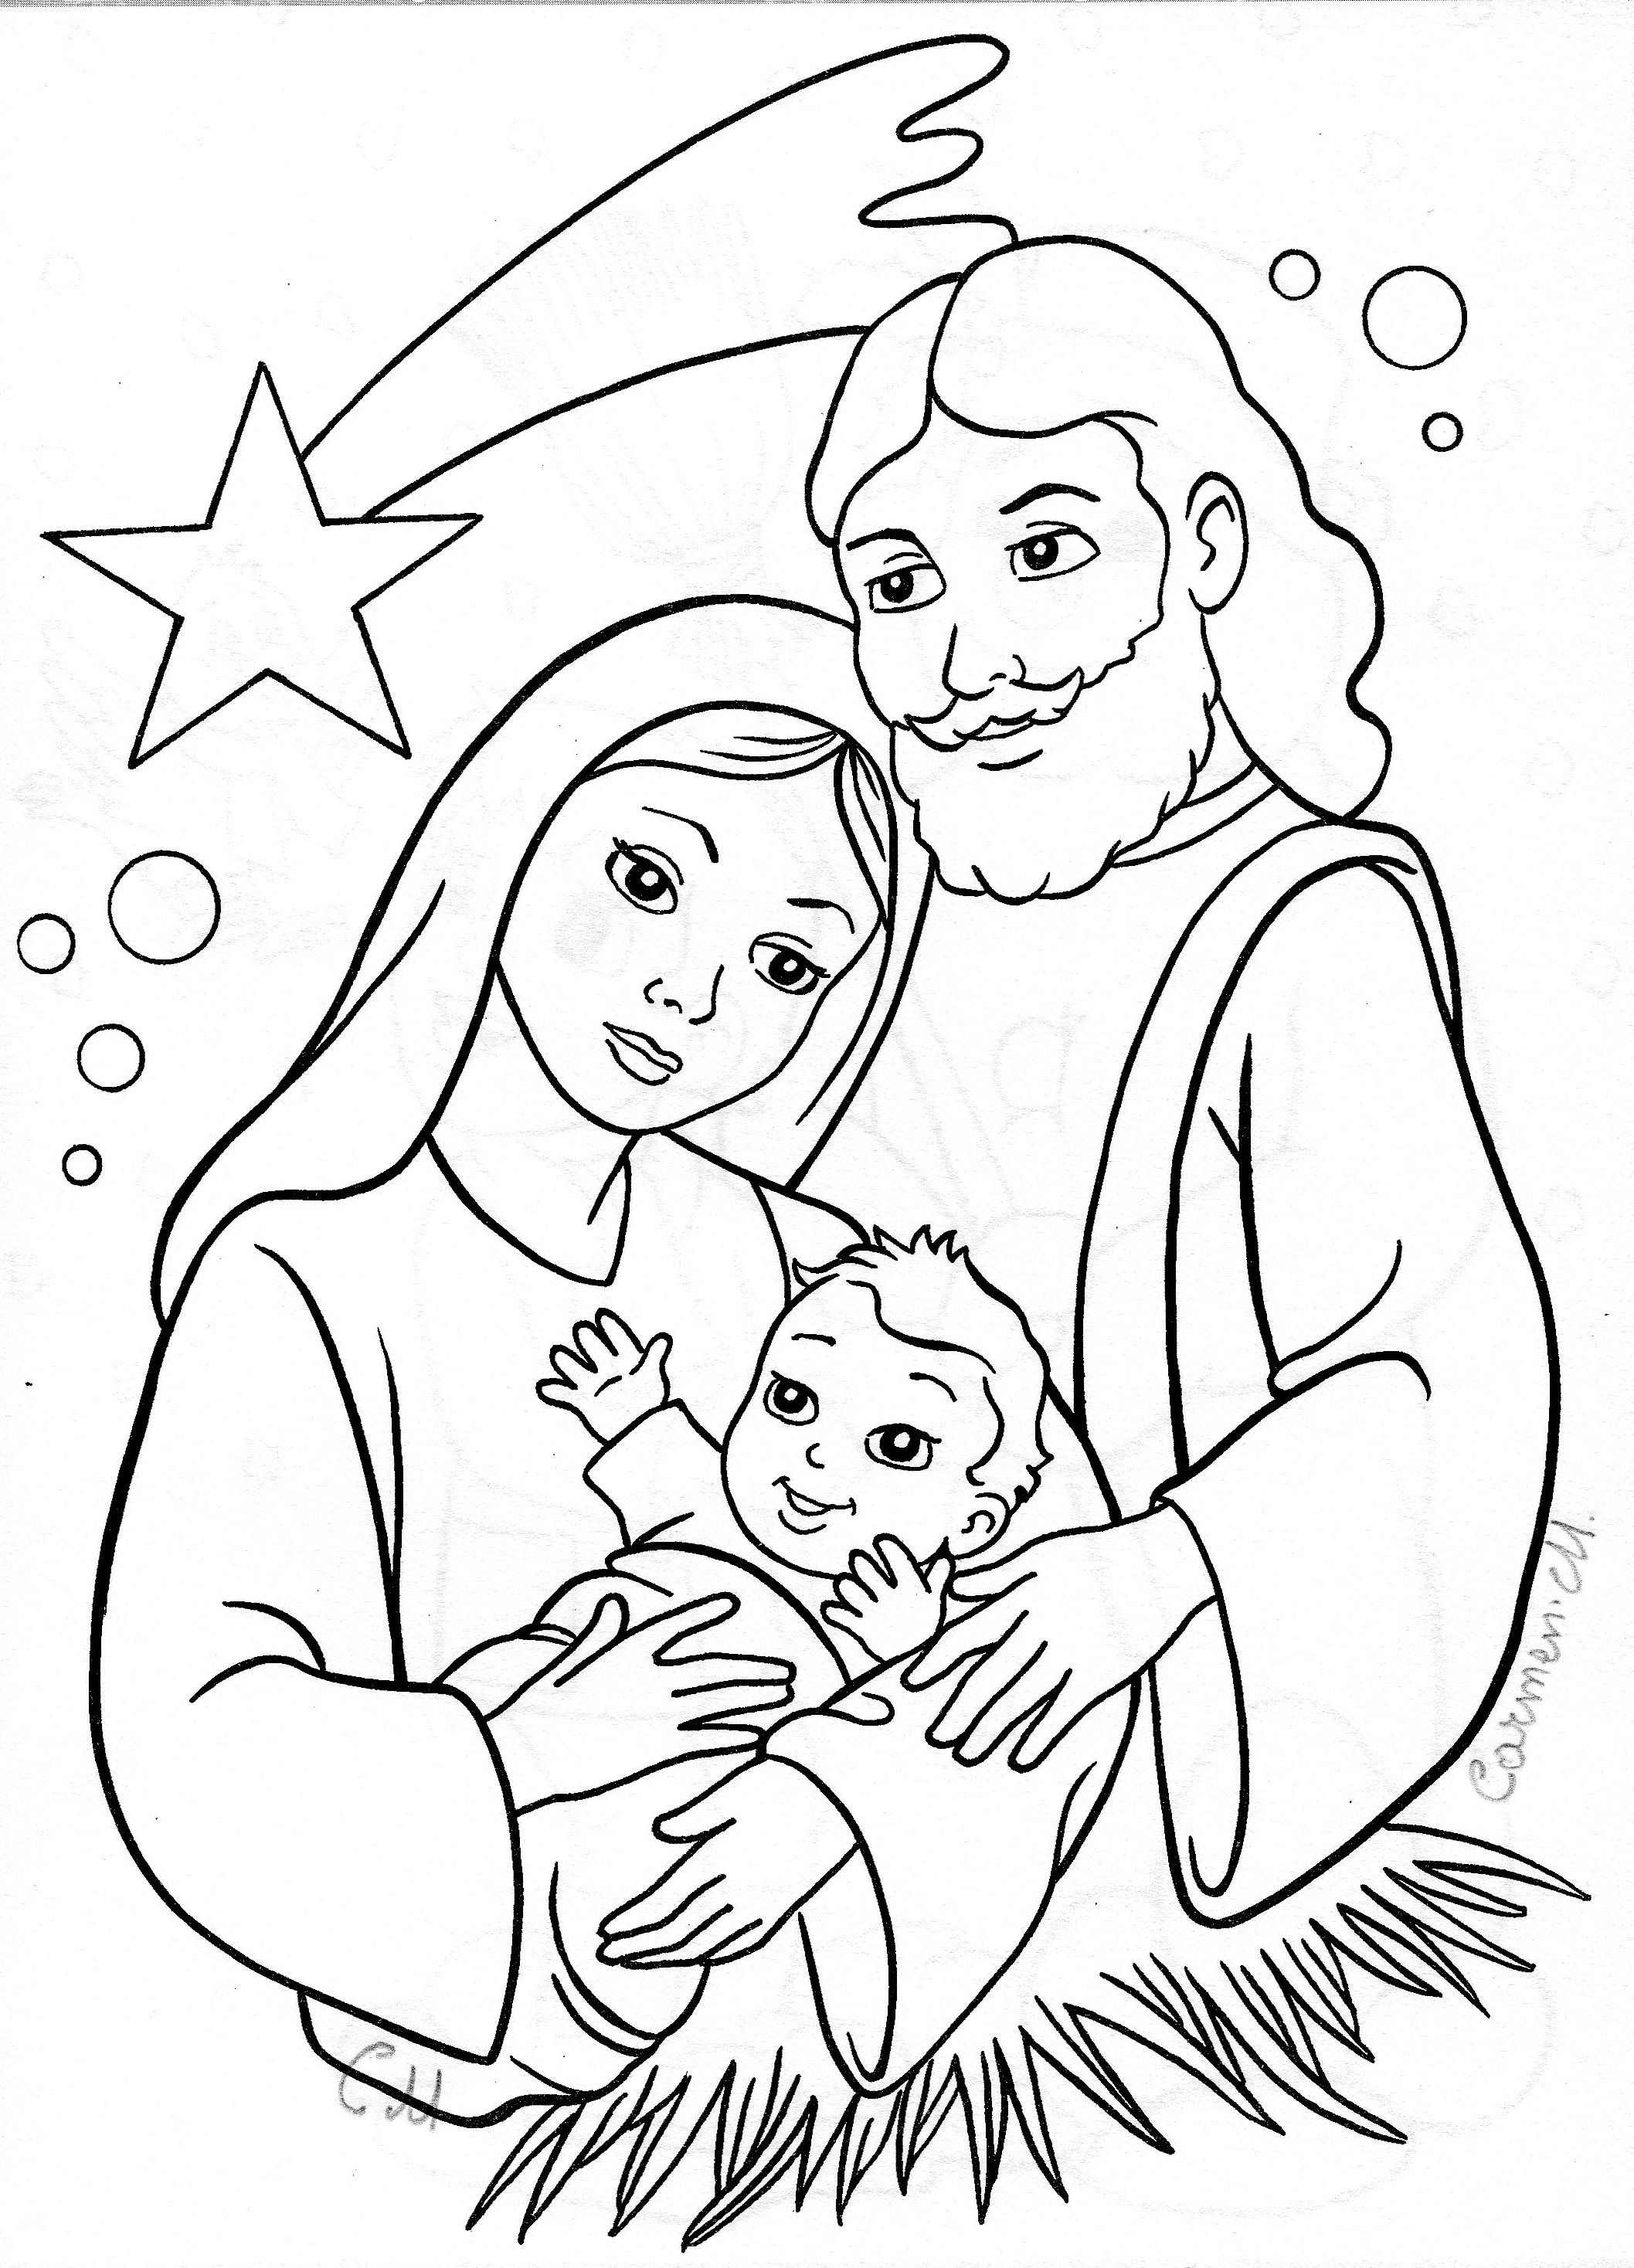 Coloring pages baby jesus printable - Find This Pin And More On Christmas Printables